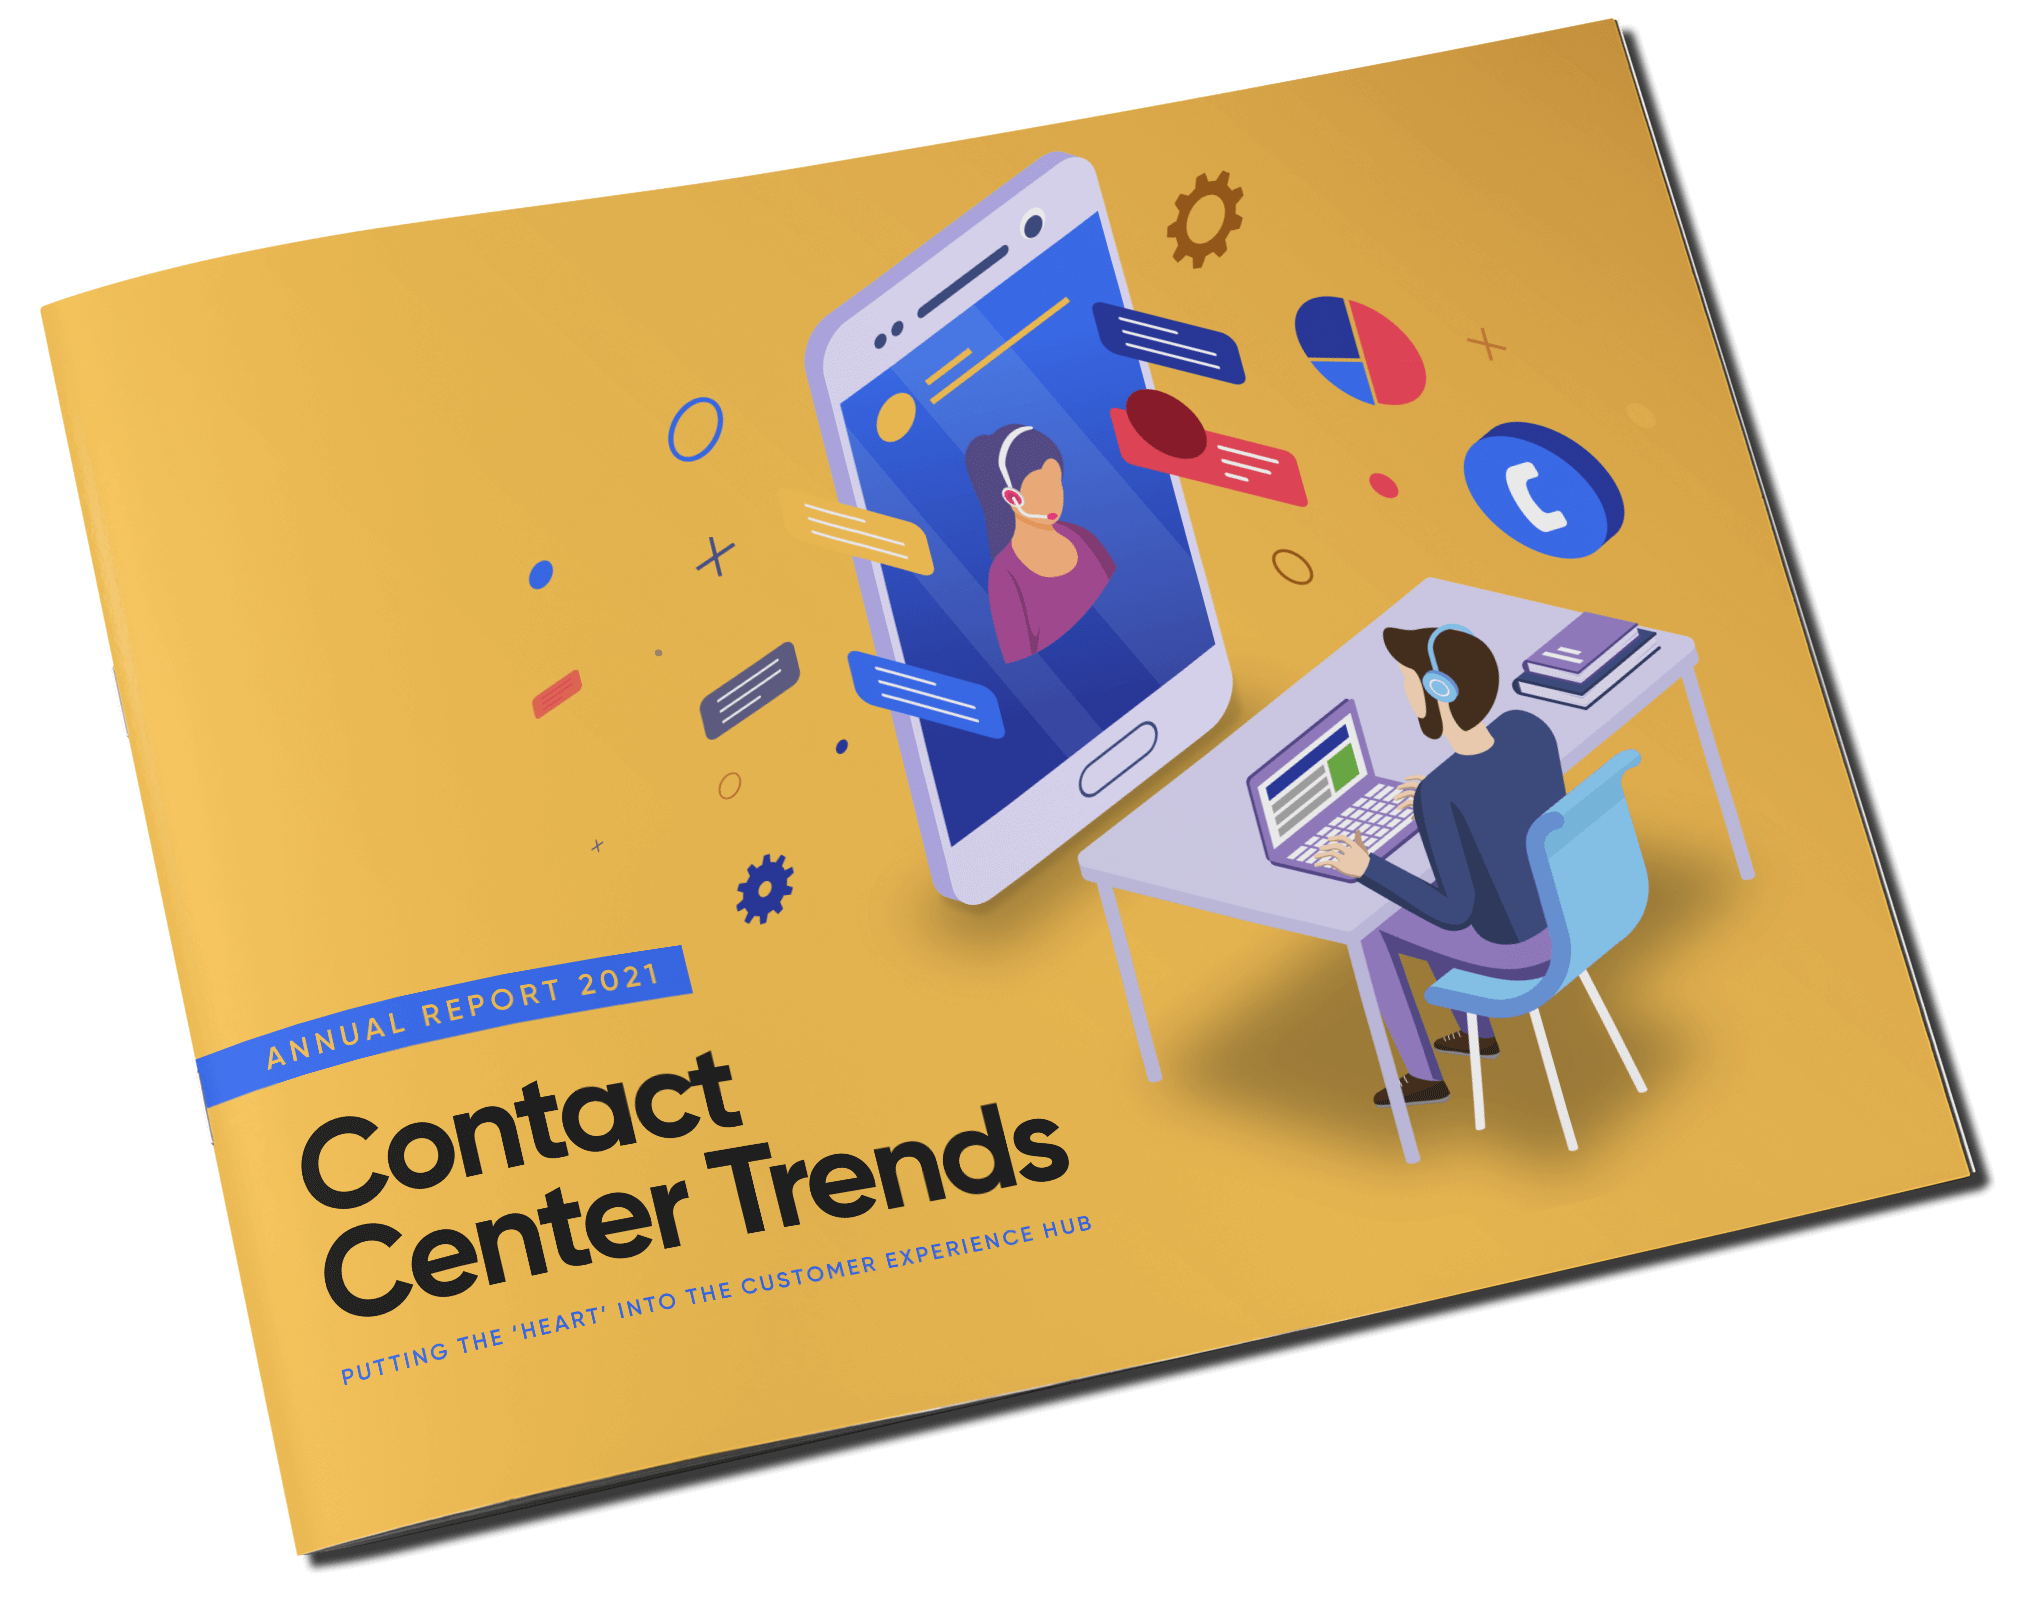 contact center trends 2021 wp front cover image